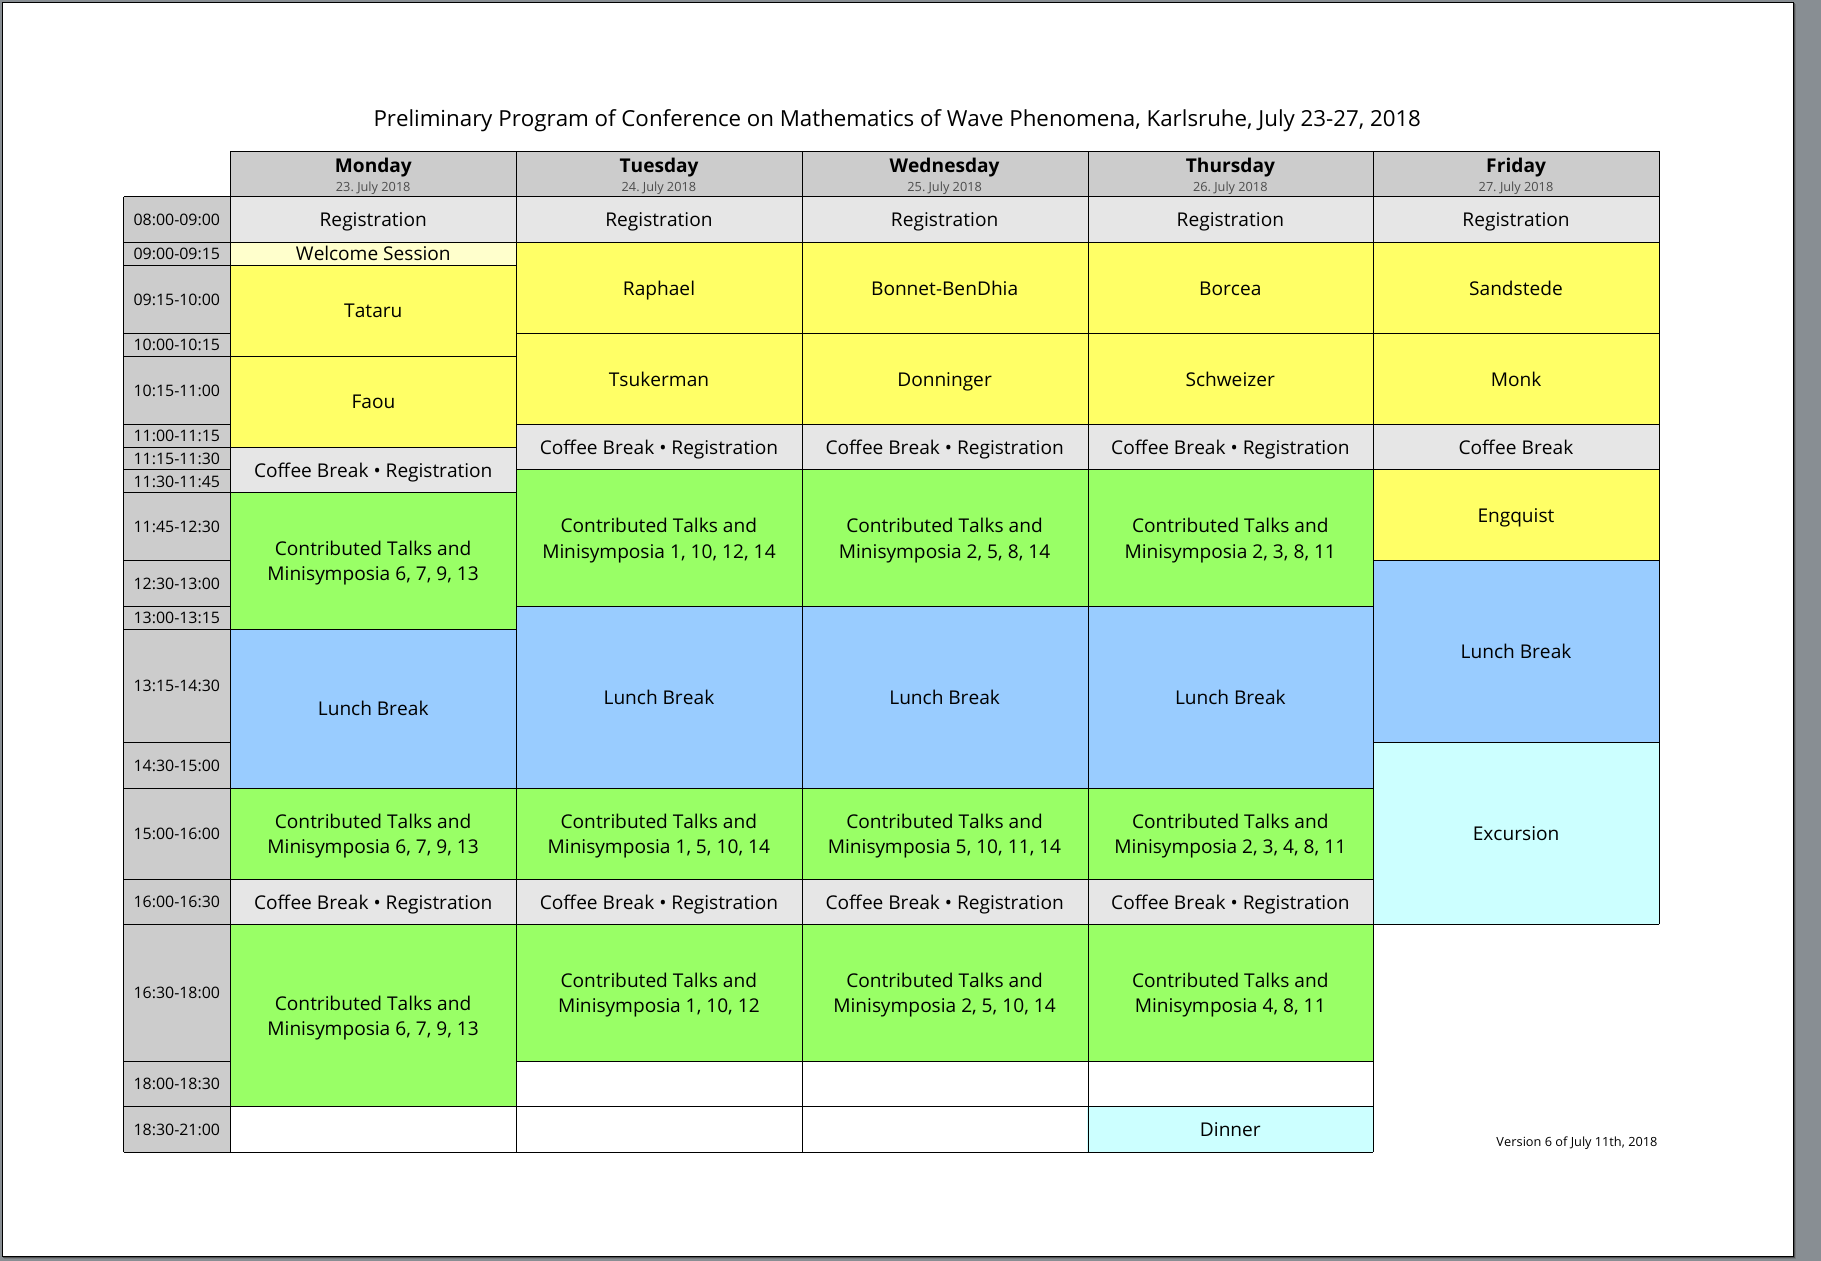 image of the preliminary program